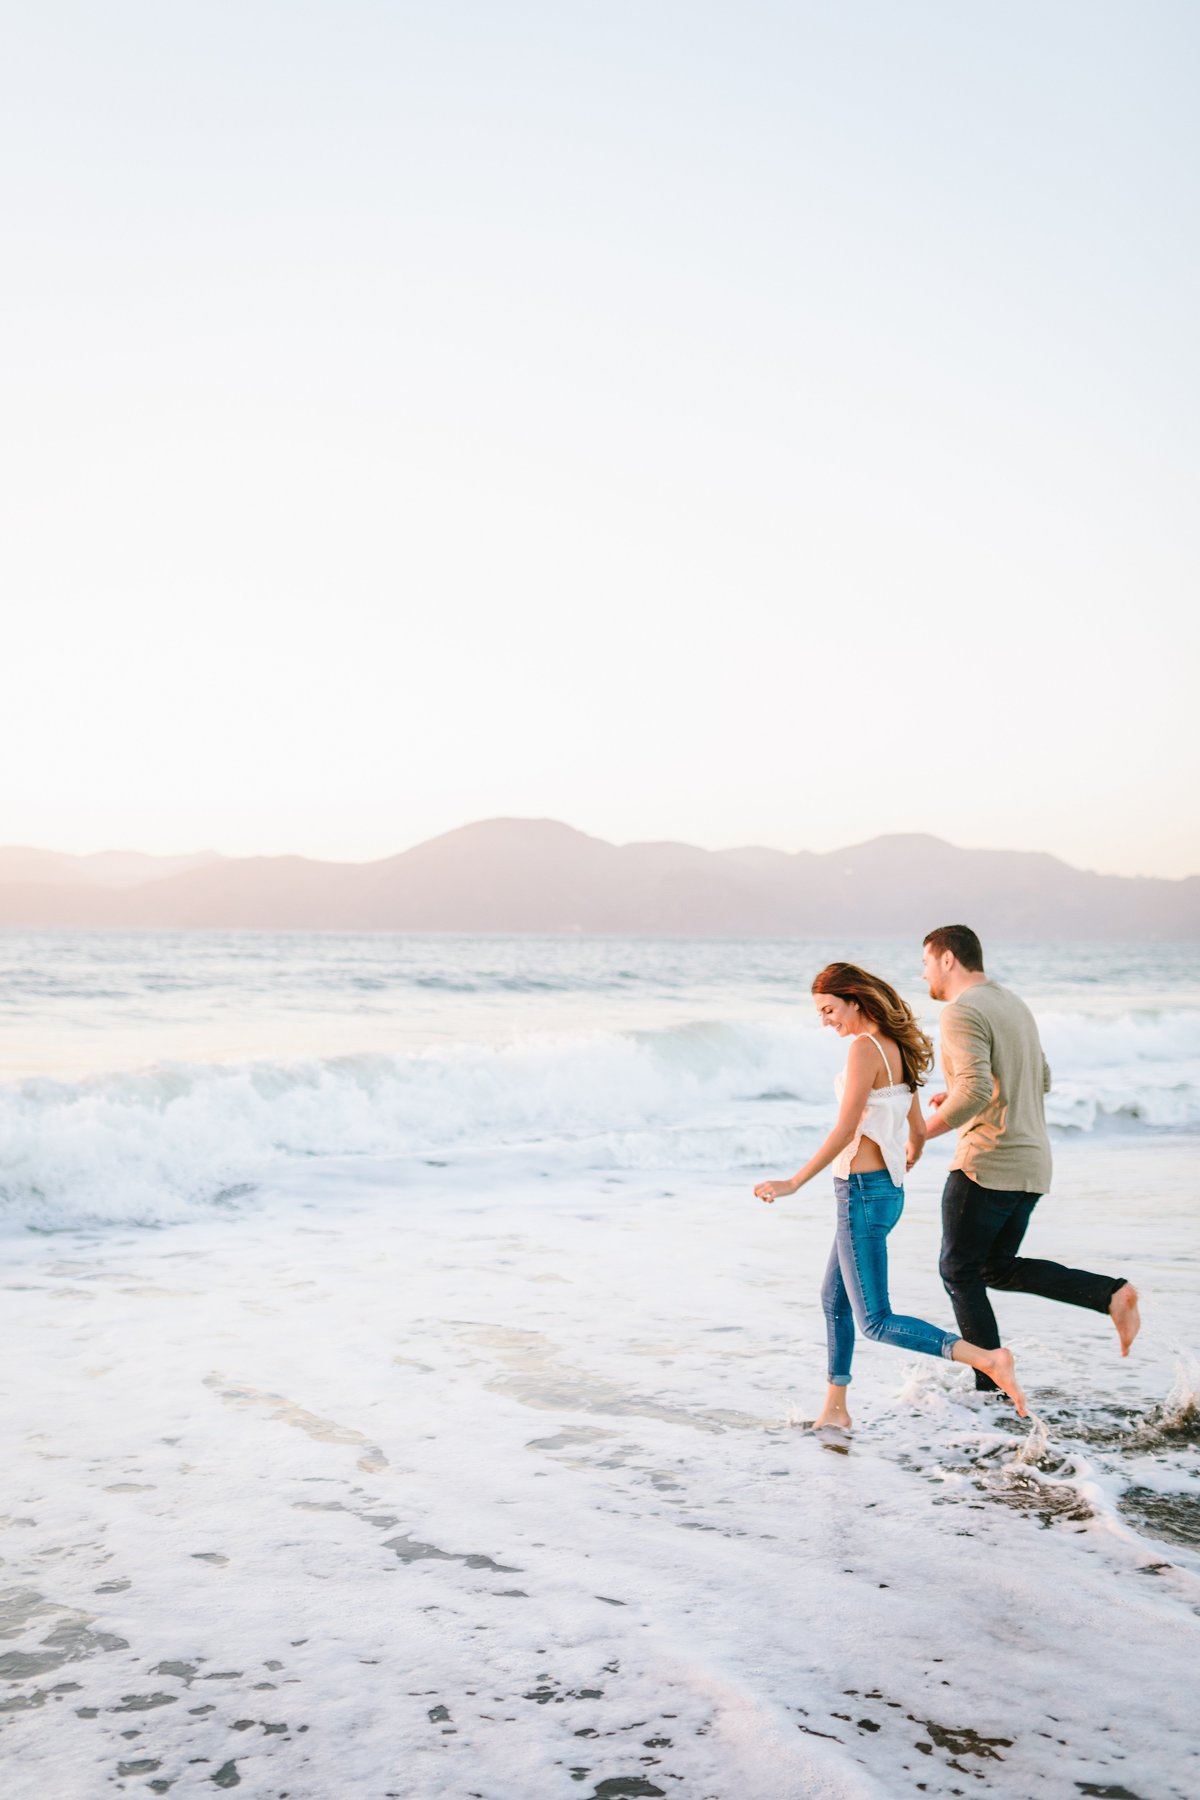 Best California Engagement Photographer_Jodee Debes Photography_218